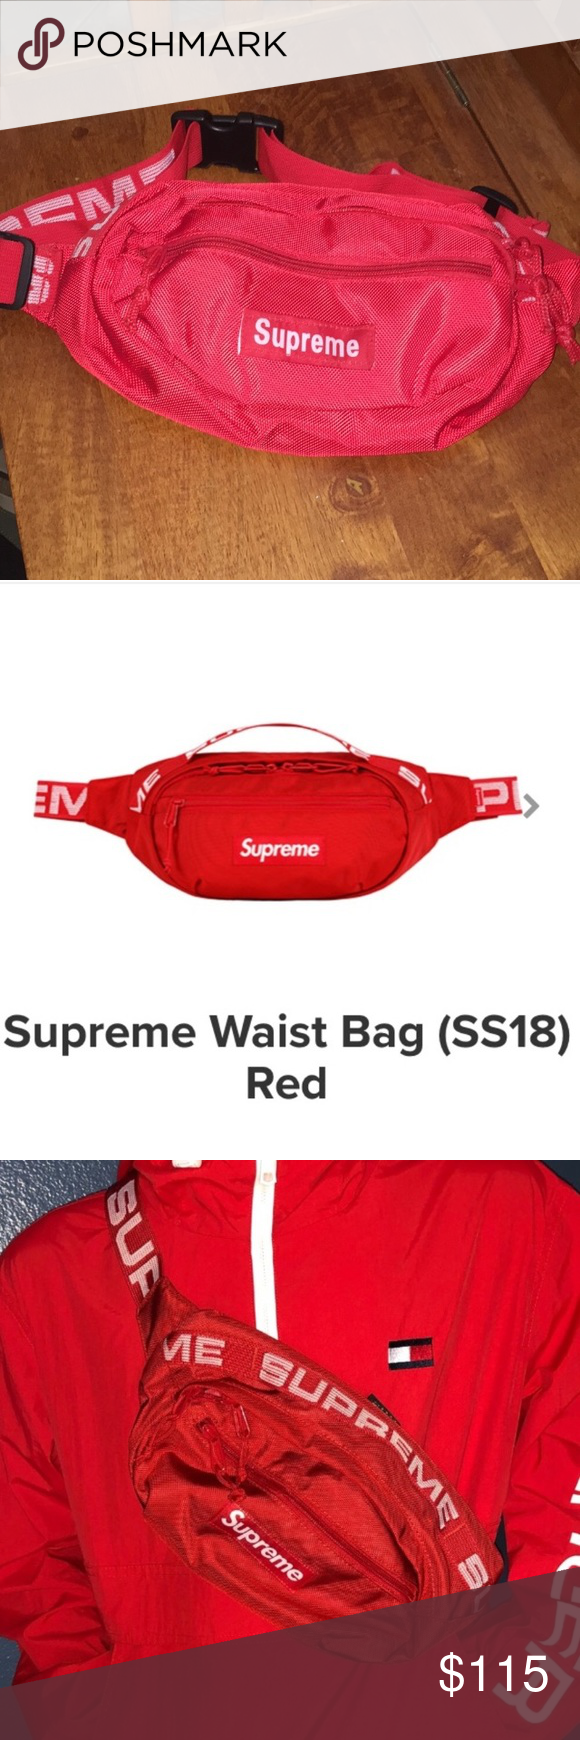 3c261d1f Red supreme fanny pack Red supreme fanny pack - price is low because I  can't find the stockX email Supreme Bags